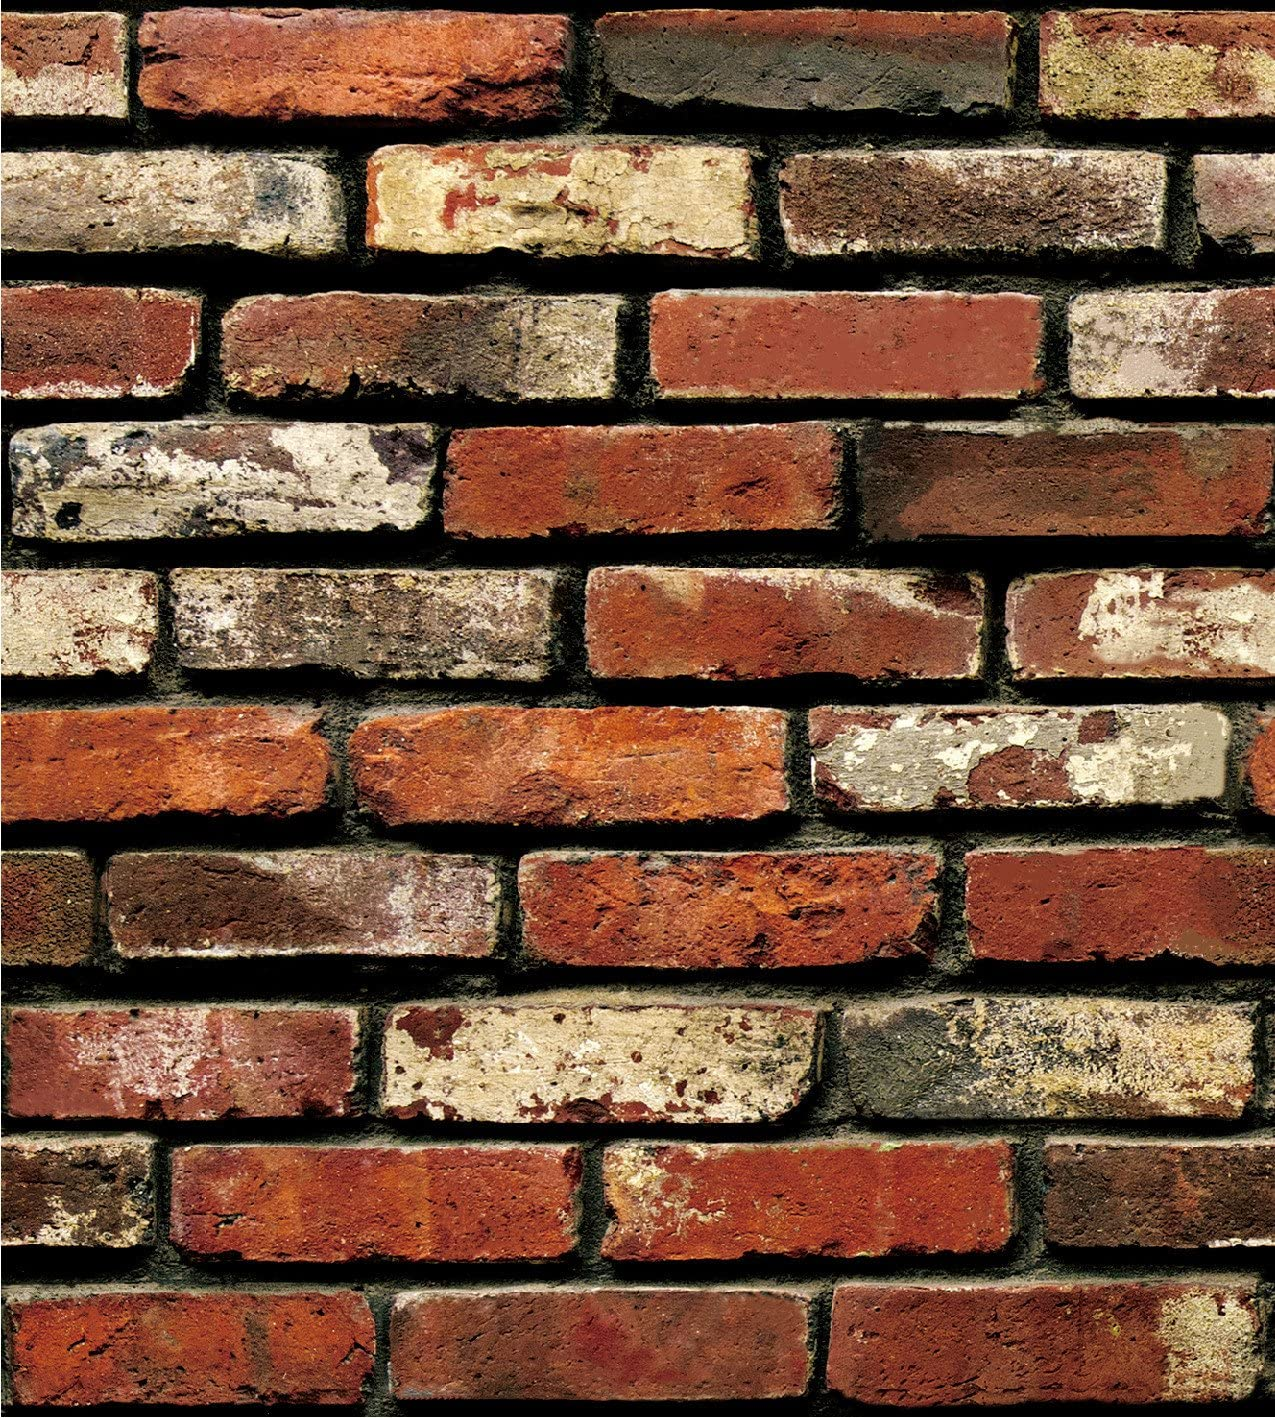 Soomj Brick Wallpaper Rust Waterproof Wallpaper Removable No Residual Easy To Put Up And Realistic Look Exposed Brick Wallpaper For Home Bar Wall Decoration 17 7 Inches By 32 8 Feet Amazon Com